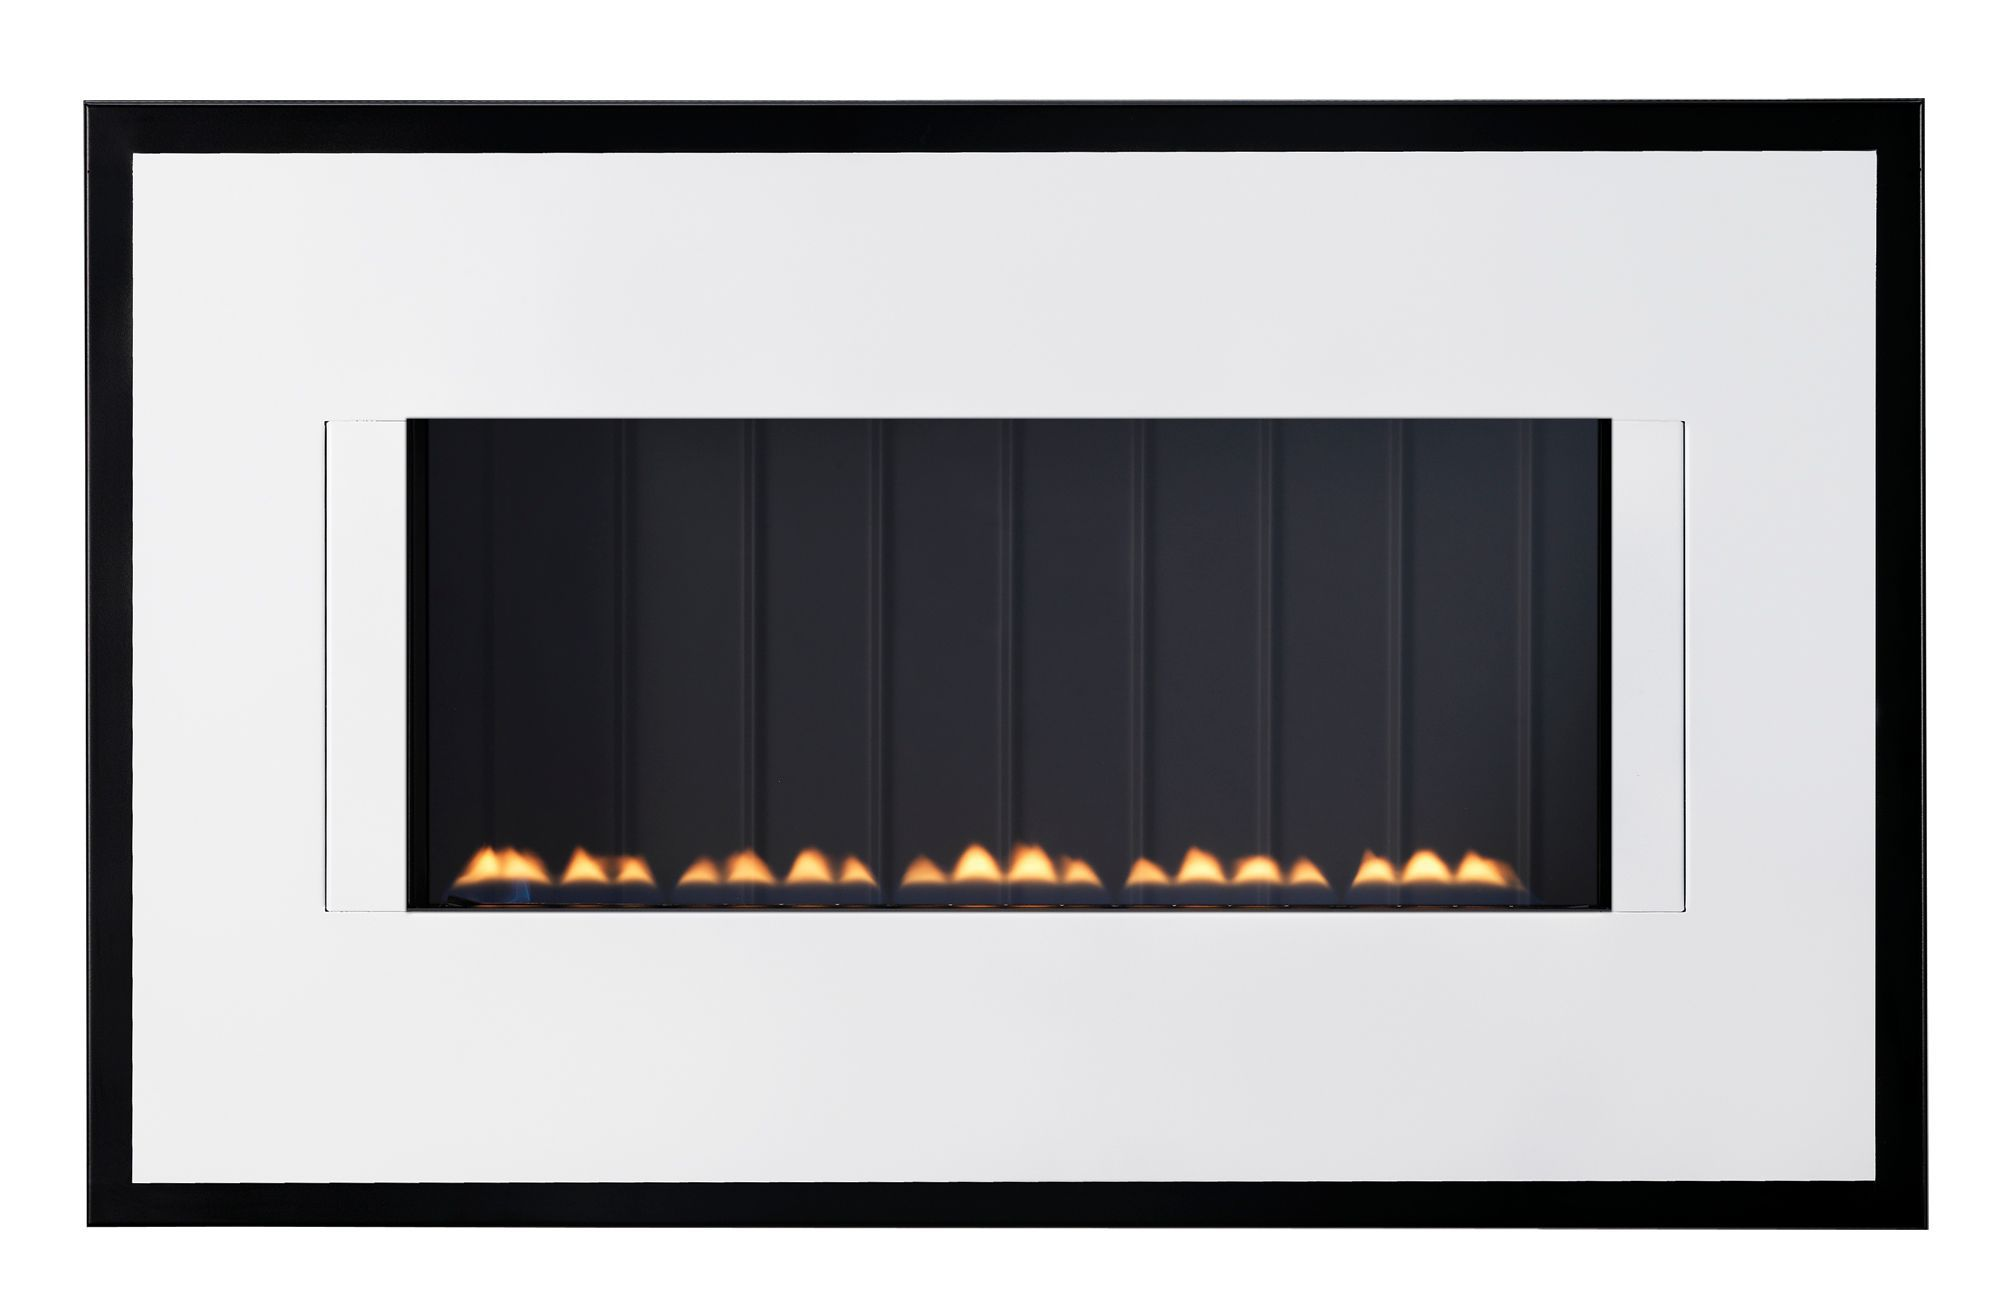 focal point midnight black manual control wall hung gas fire